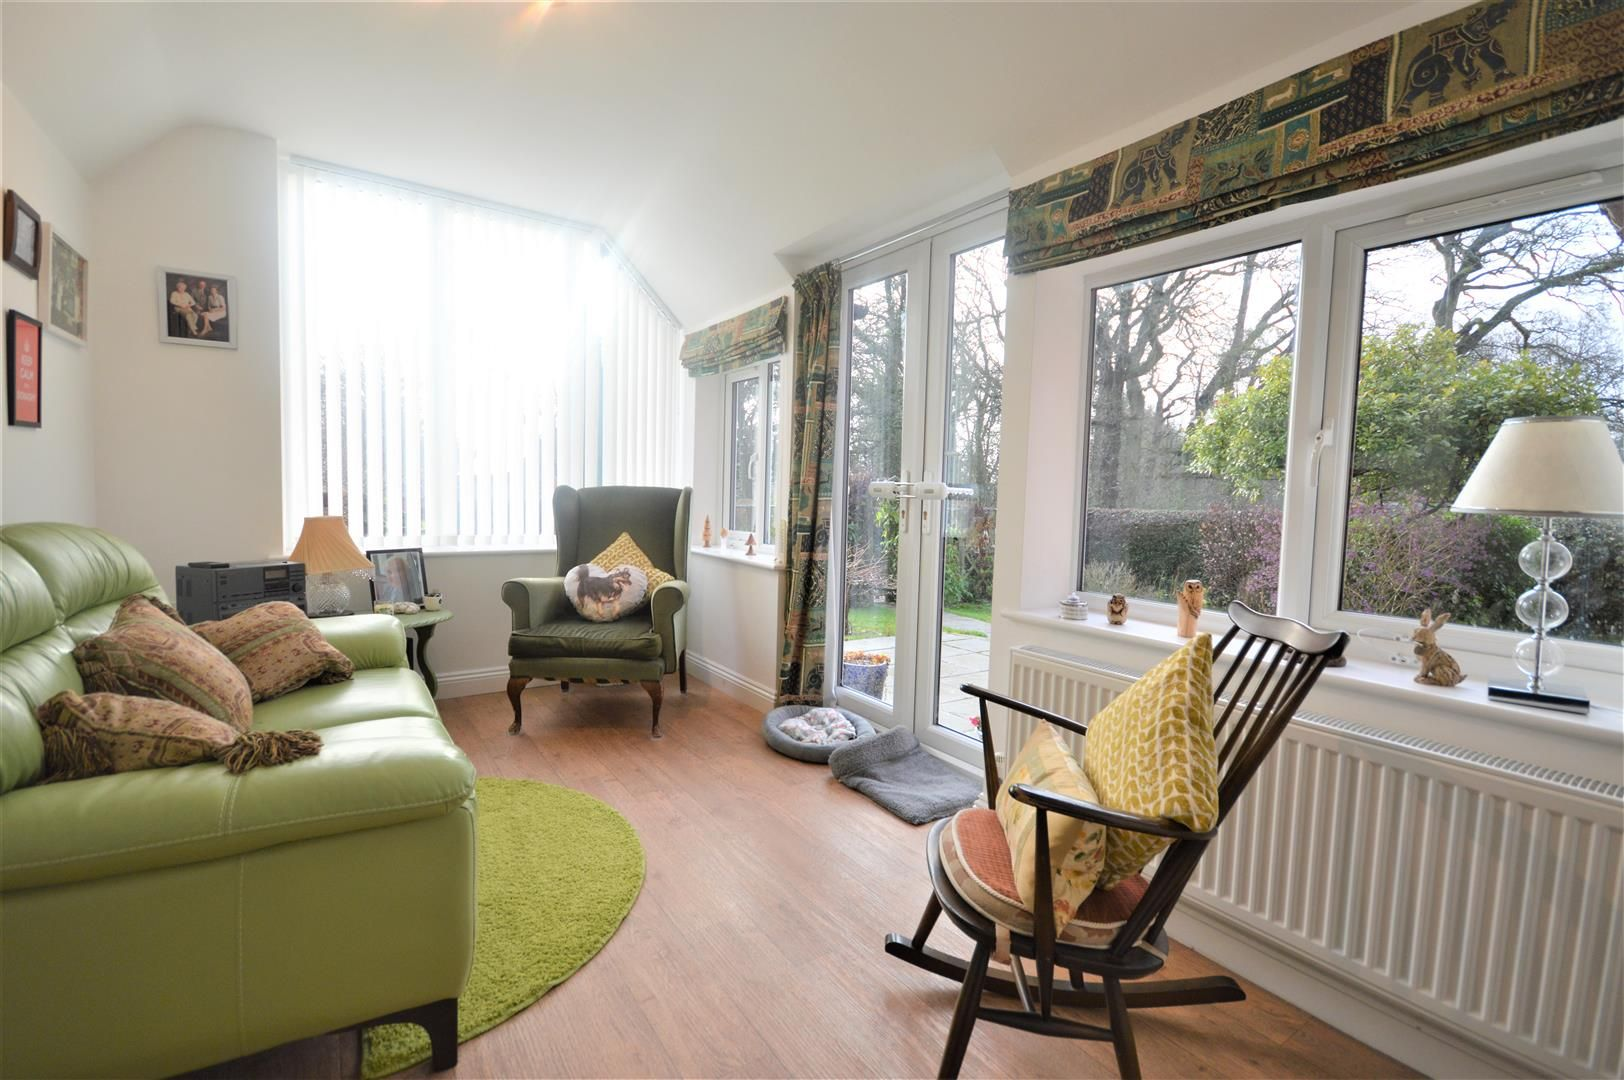 4 bed semi-detached for sale in Leysters  - Property Image 6